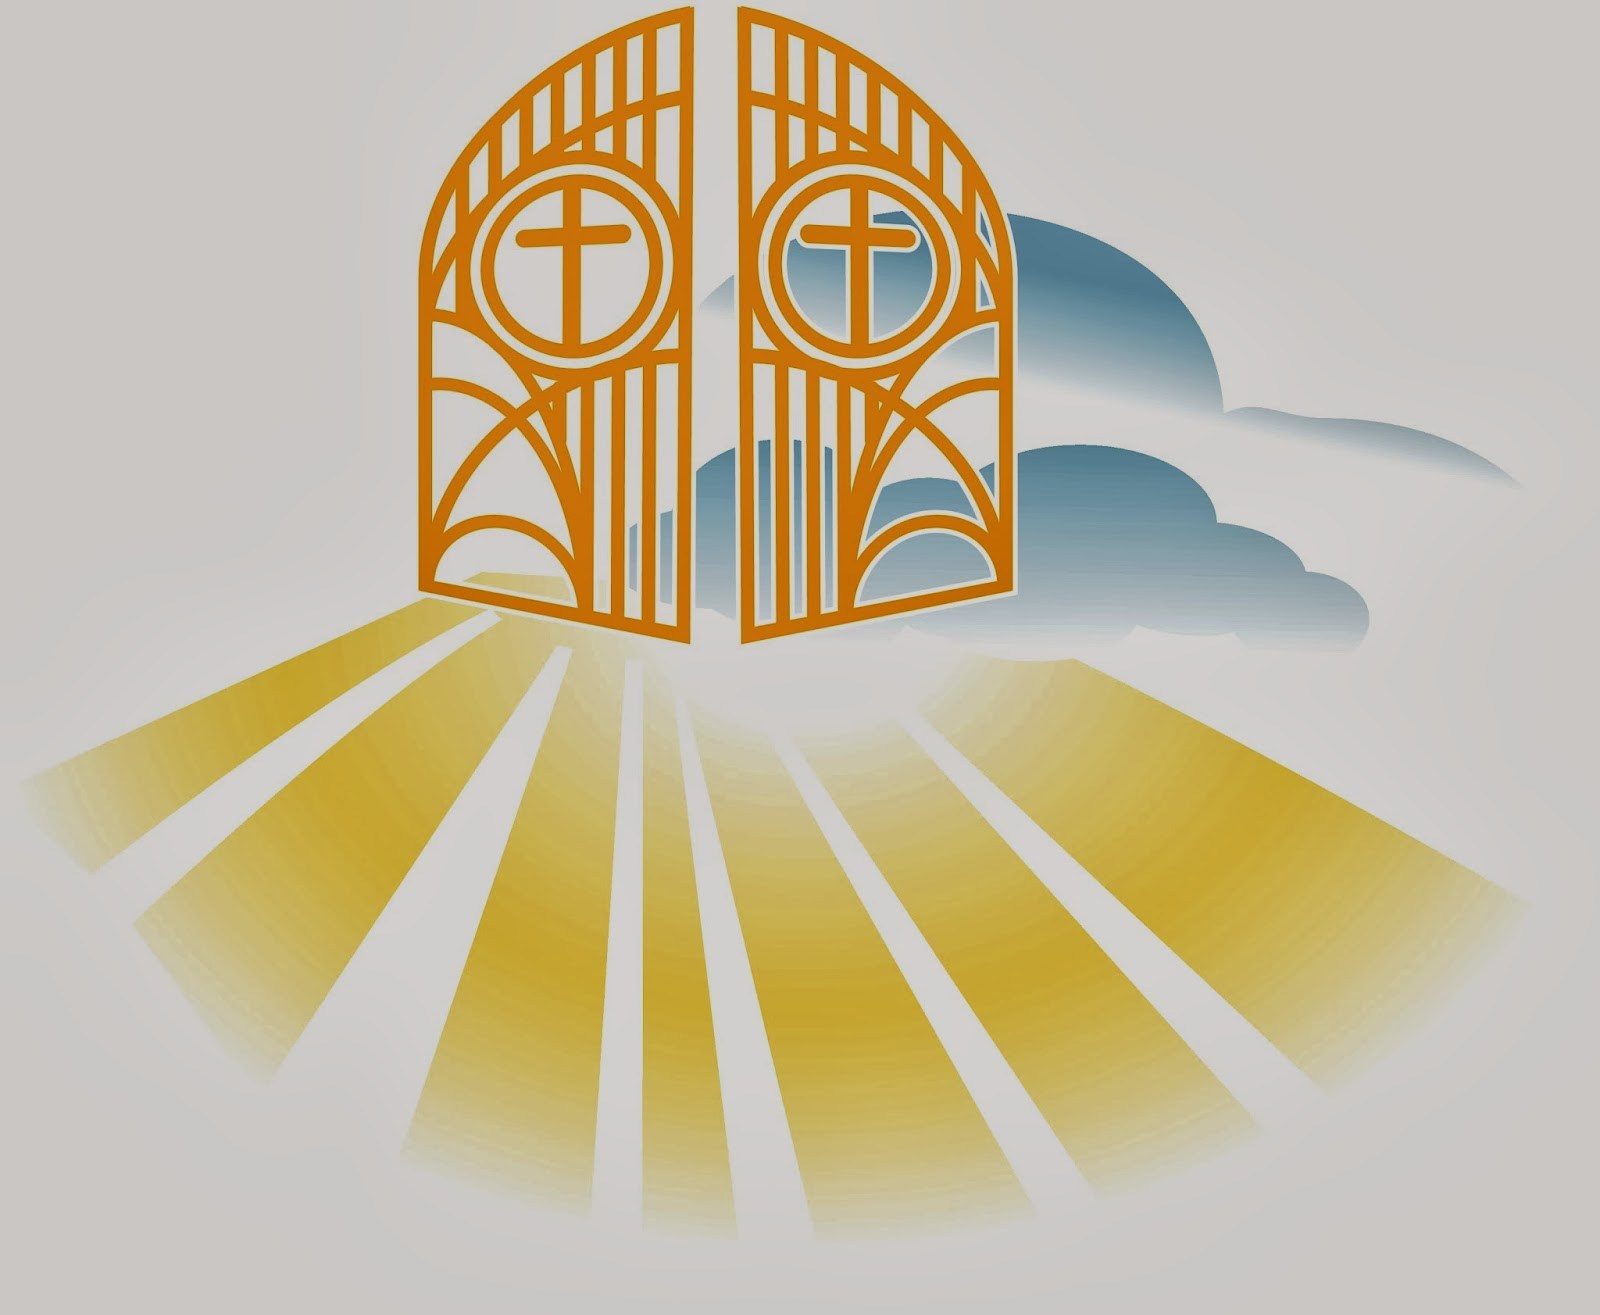 Pearly gates of portal. Heaven clipart peaceful